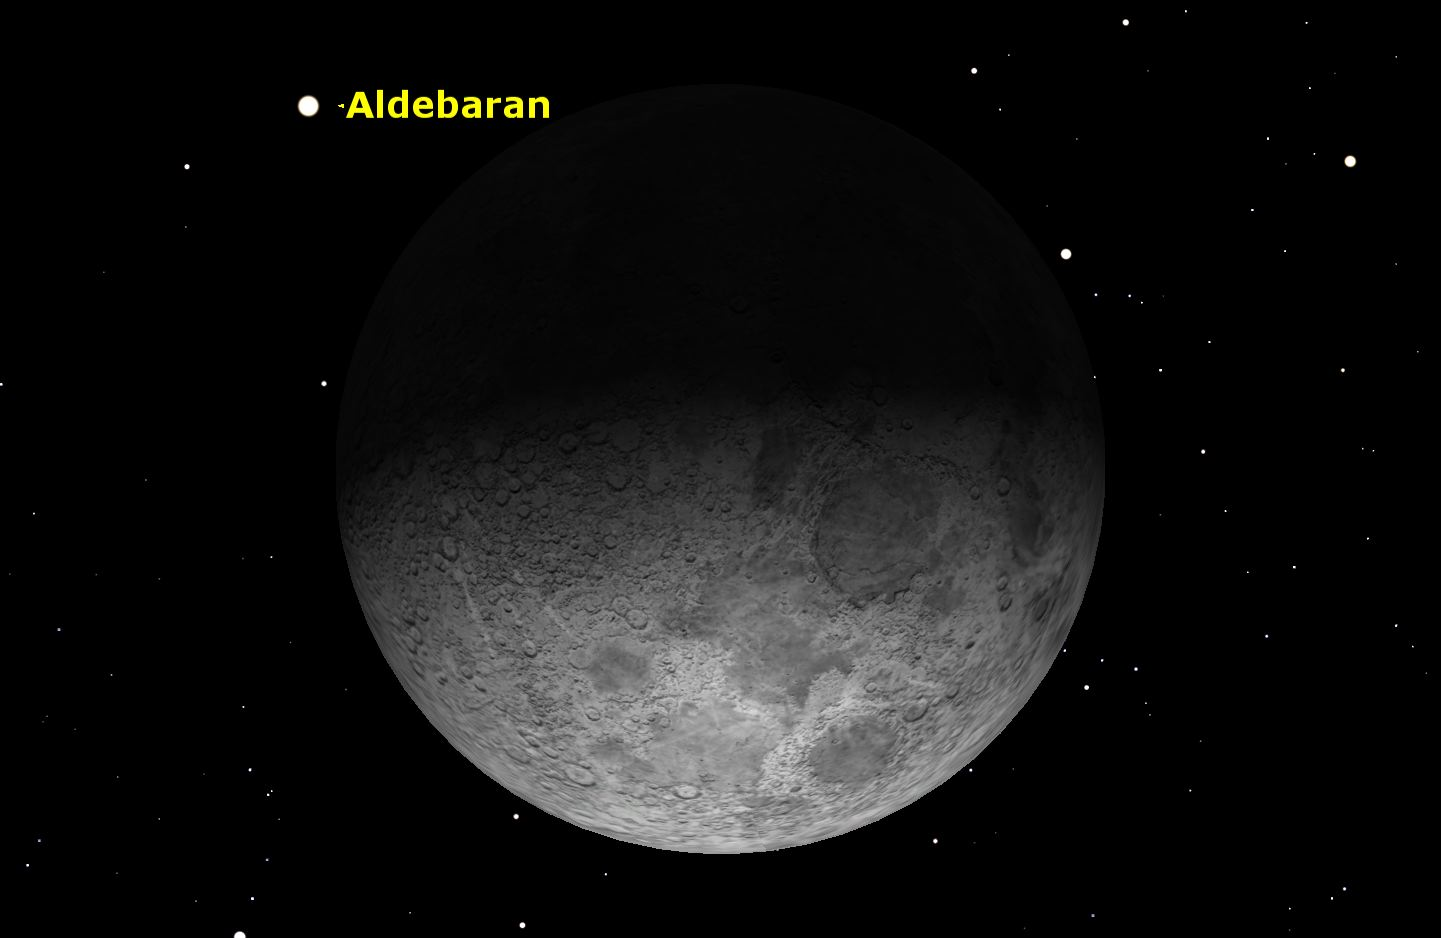 Aldebaran occulted by Moon, February 2016